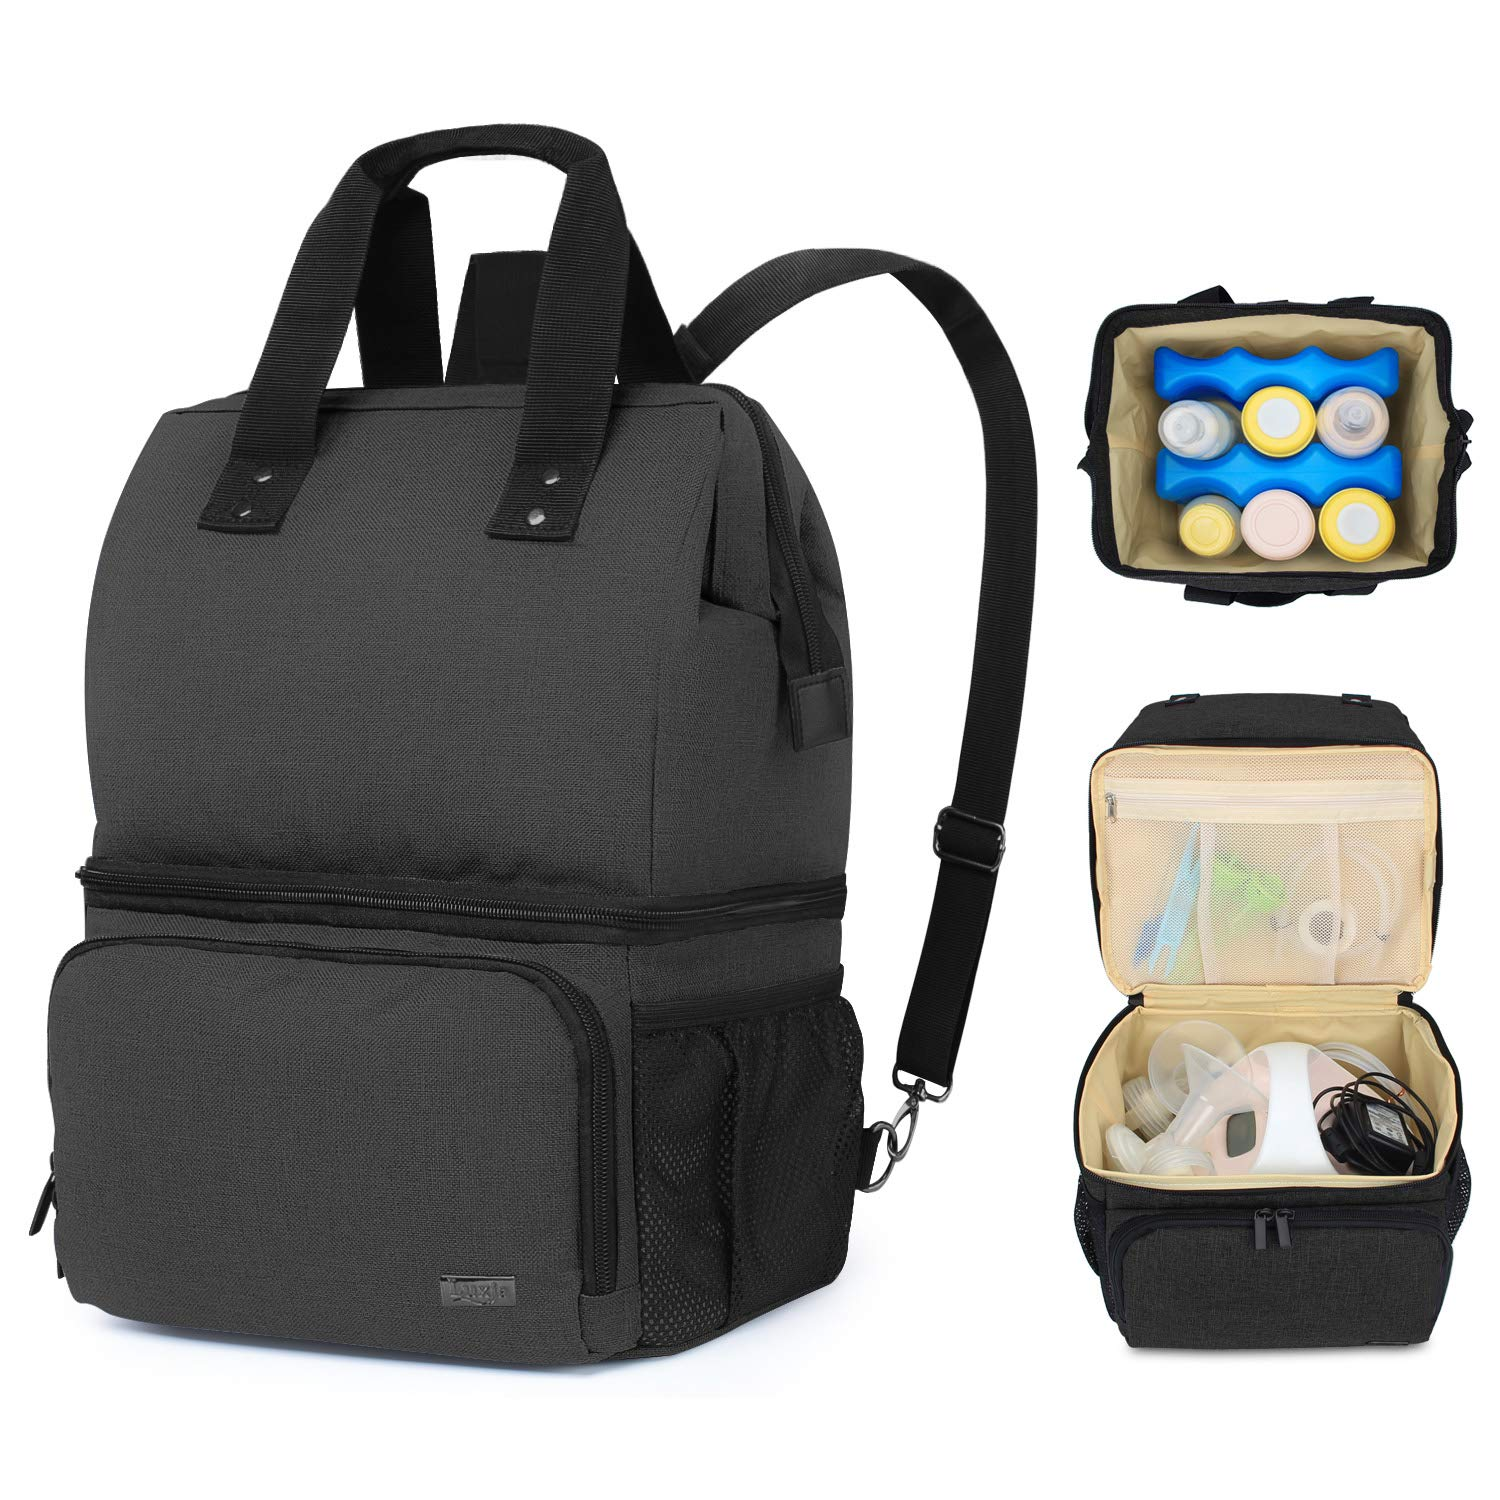 Luxja Breast Pump Bag with 2 Compartments for Breast Pump and Cooler Bag, Breast Pumping Bag with 2 Options for Wearing (Fits Most Major Breast Pump), Black